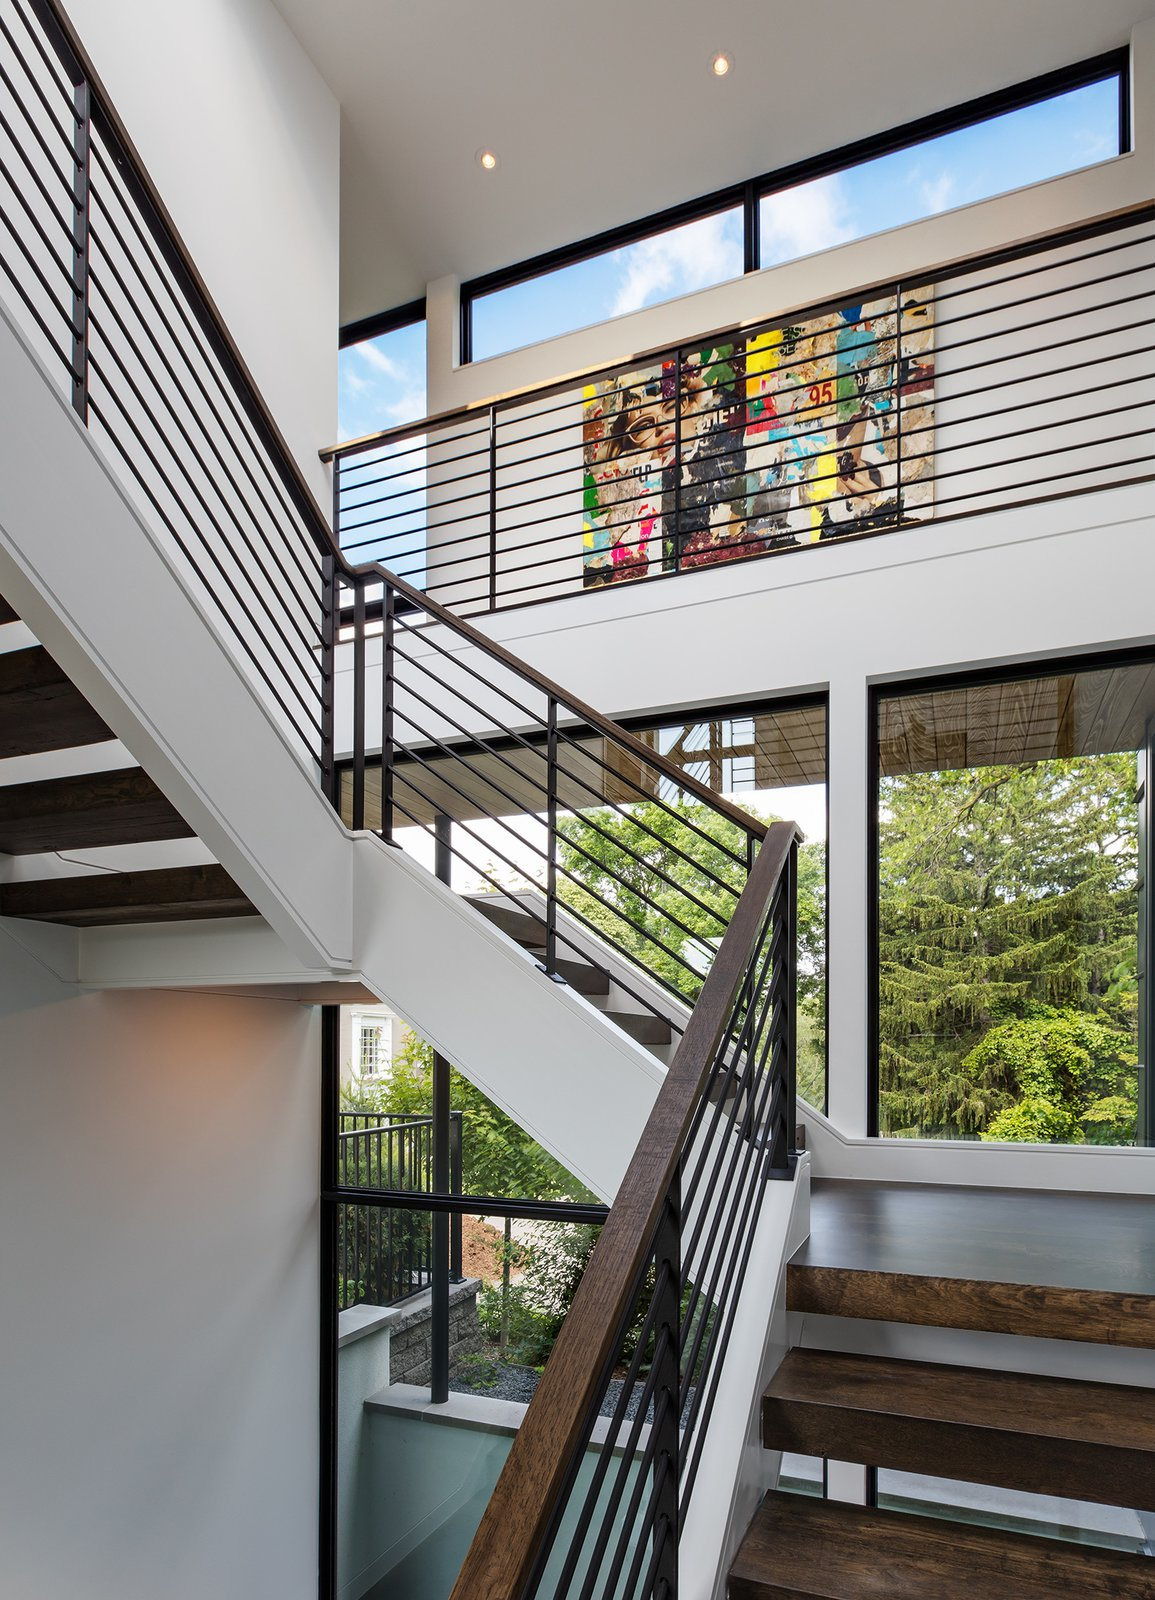 Tagged: Wood Tread, Metal Railing, Windows, Awning Window Type, Picture Window Type, and Metal.  Calhoun Pavilions Residence by Peterssen/Keller Architecture